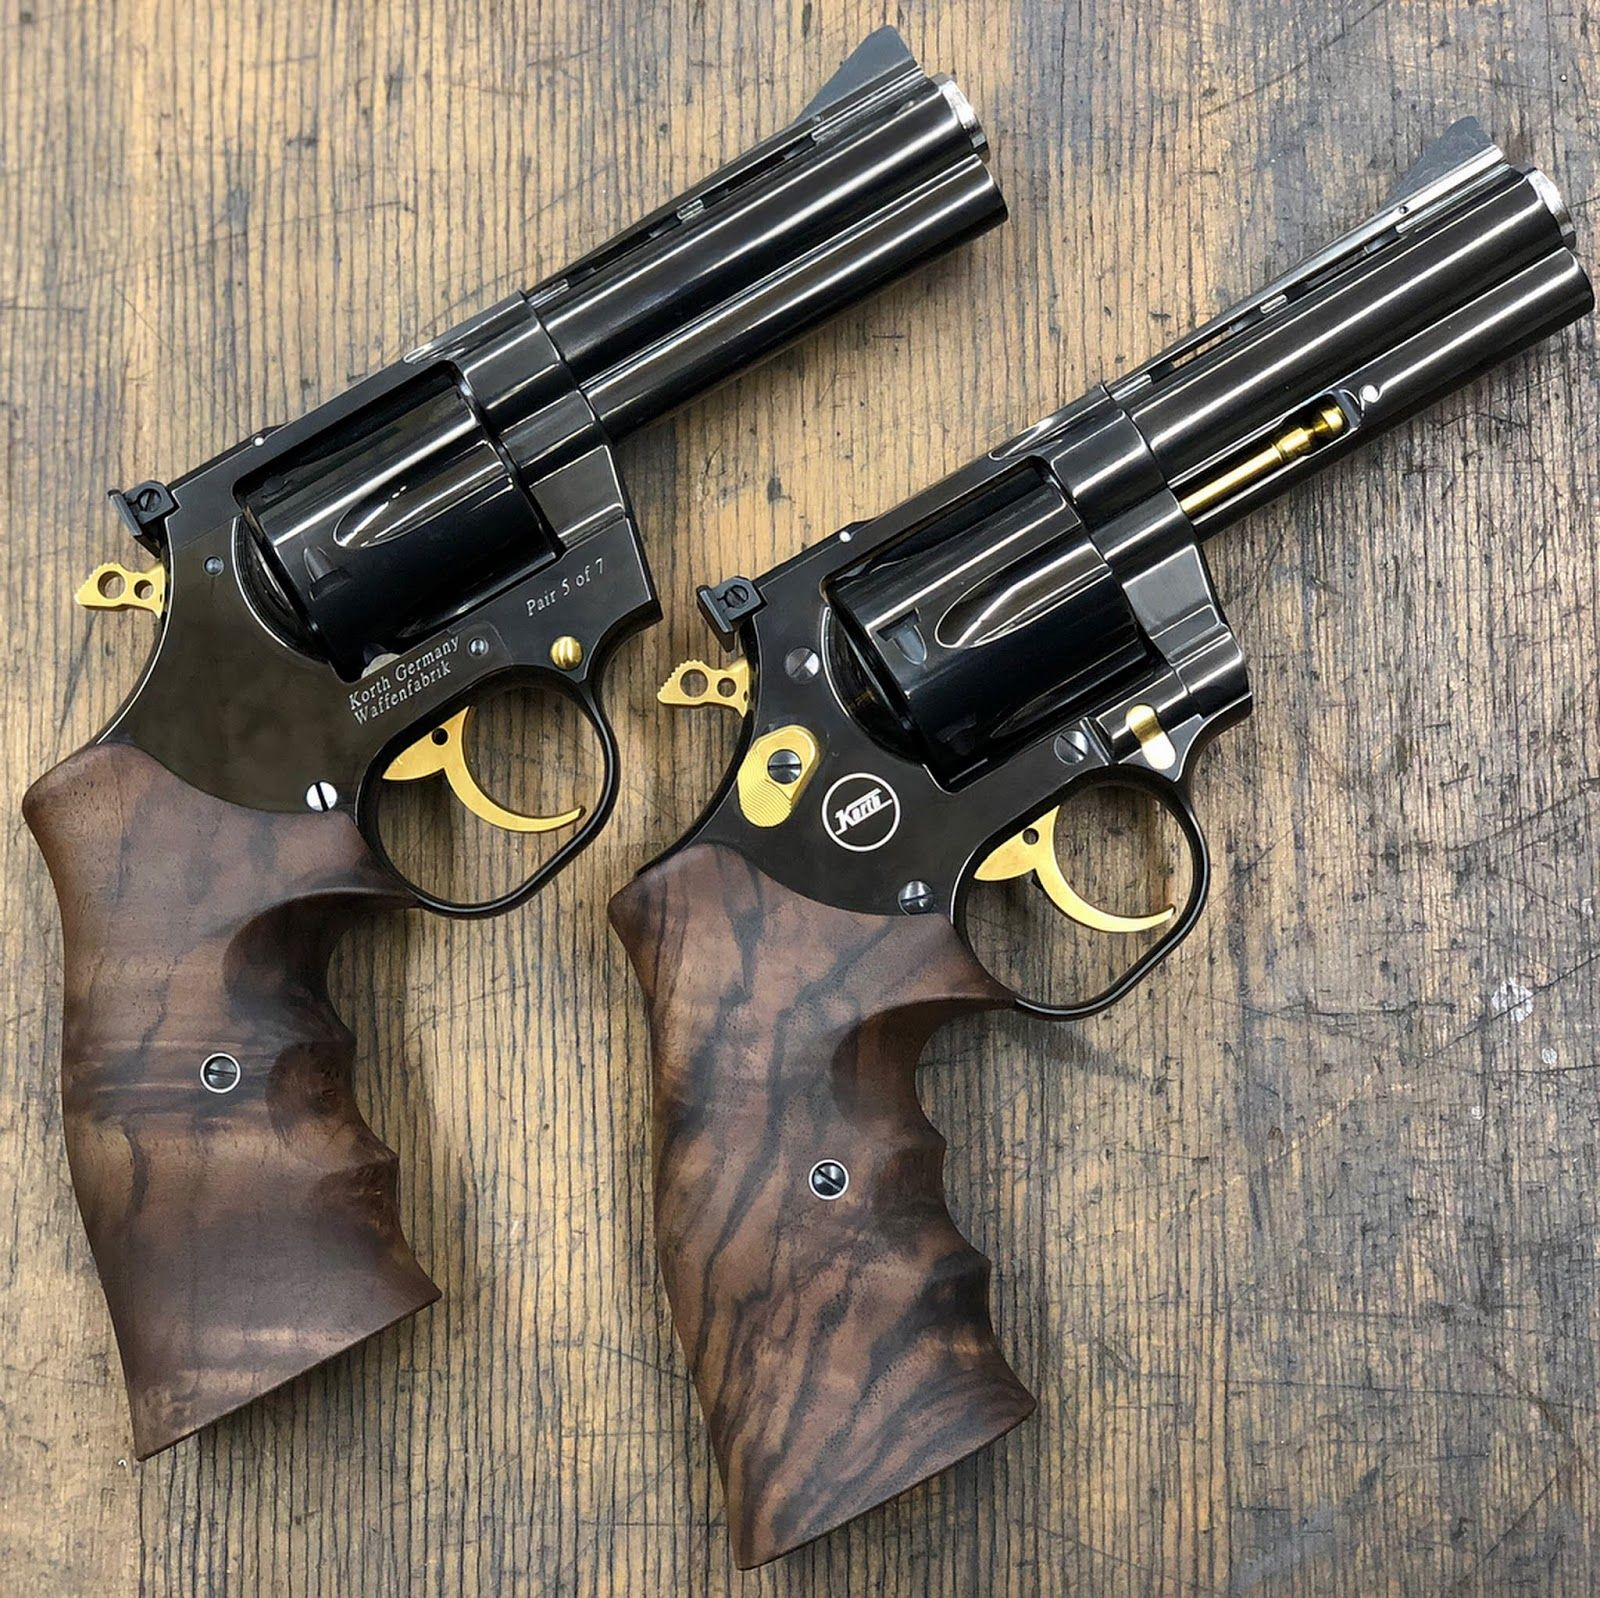 KORTH - $3,500 starting price  Note the bottom revolver is a true